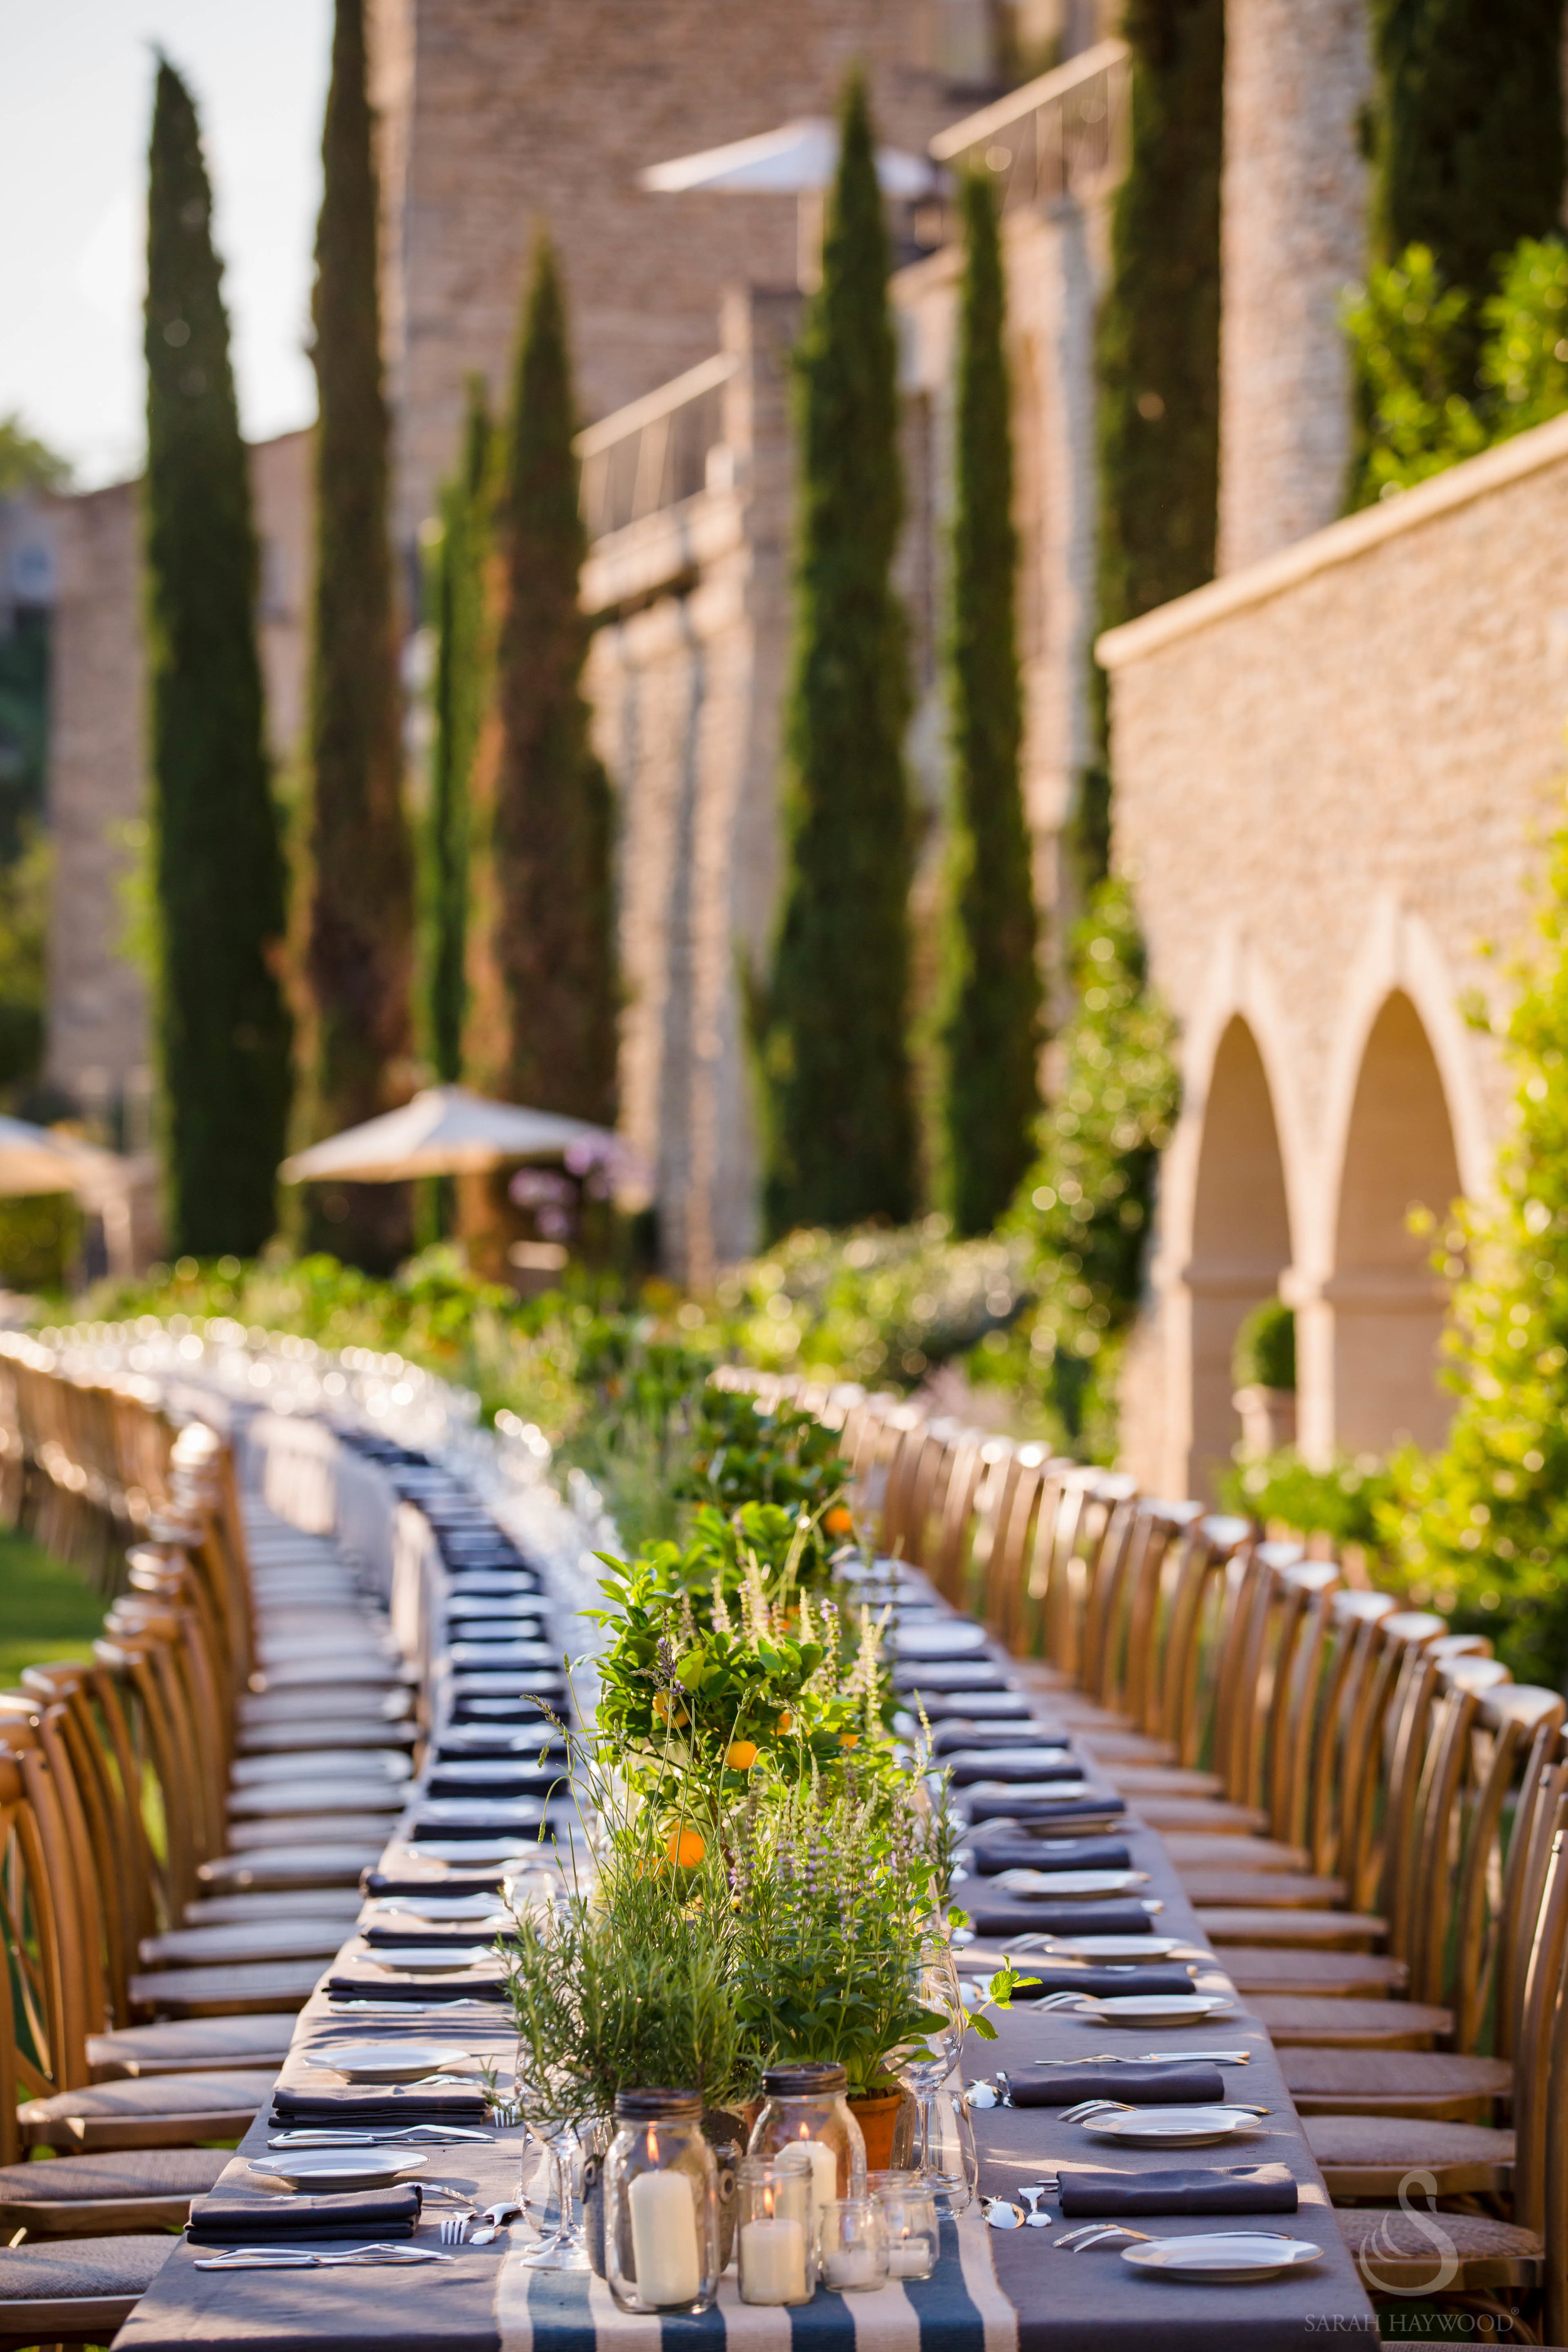 luxury-destination-wedding-Provence-France-sarah-haywood-copyright-Filmatography.73-jpg.jpg